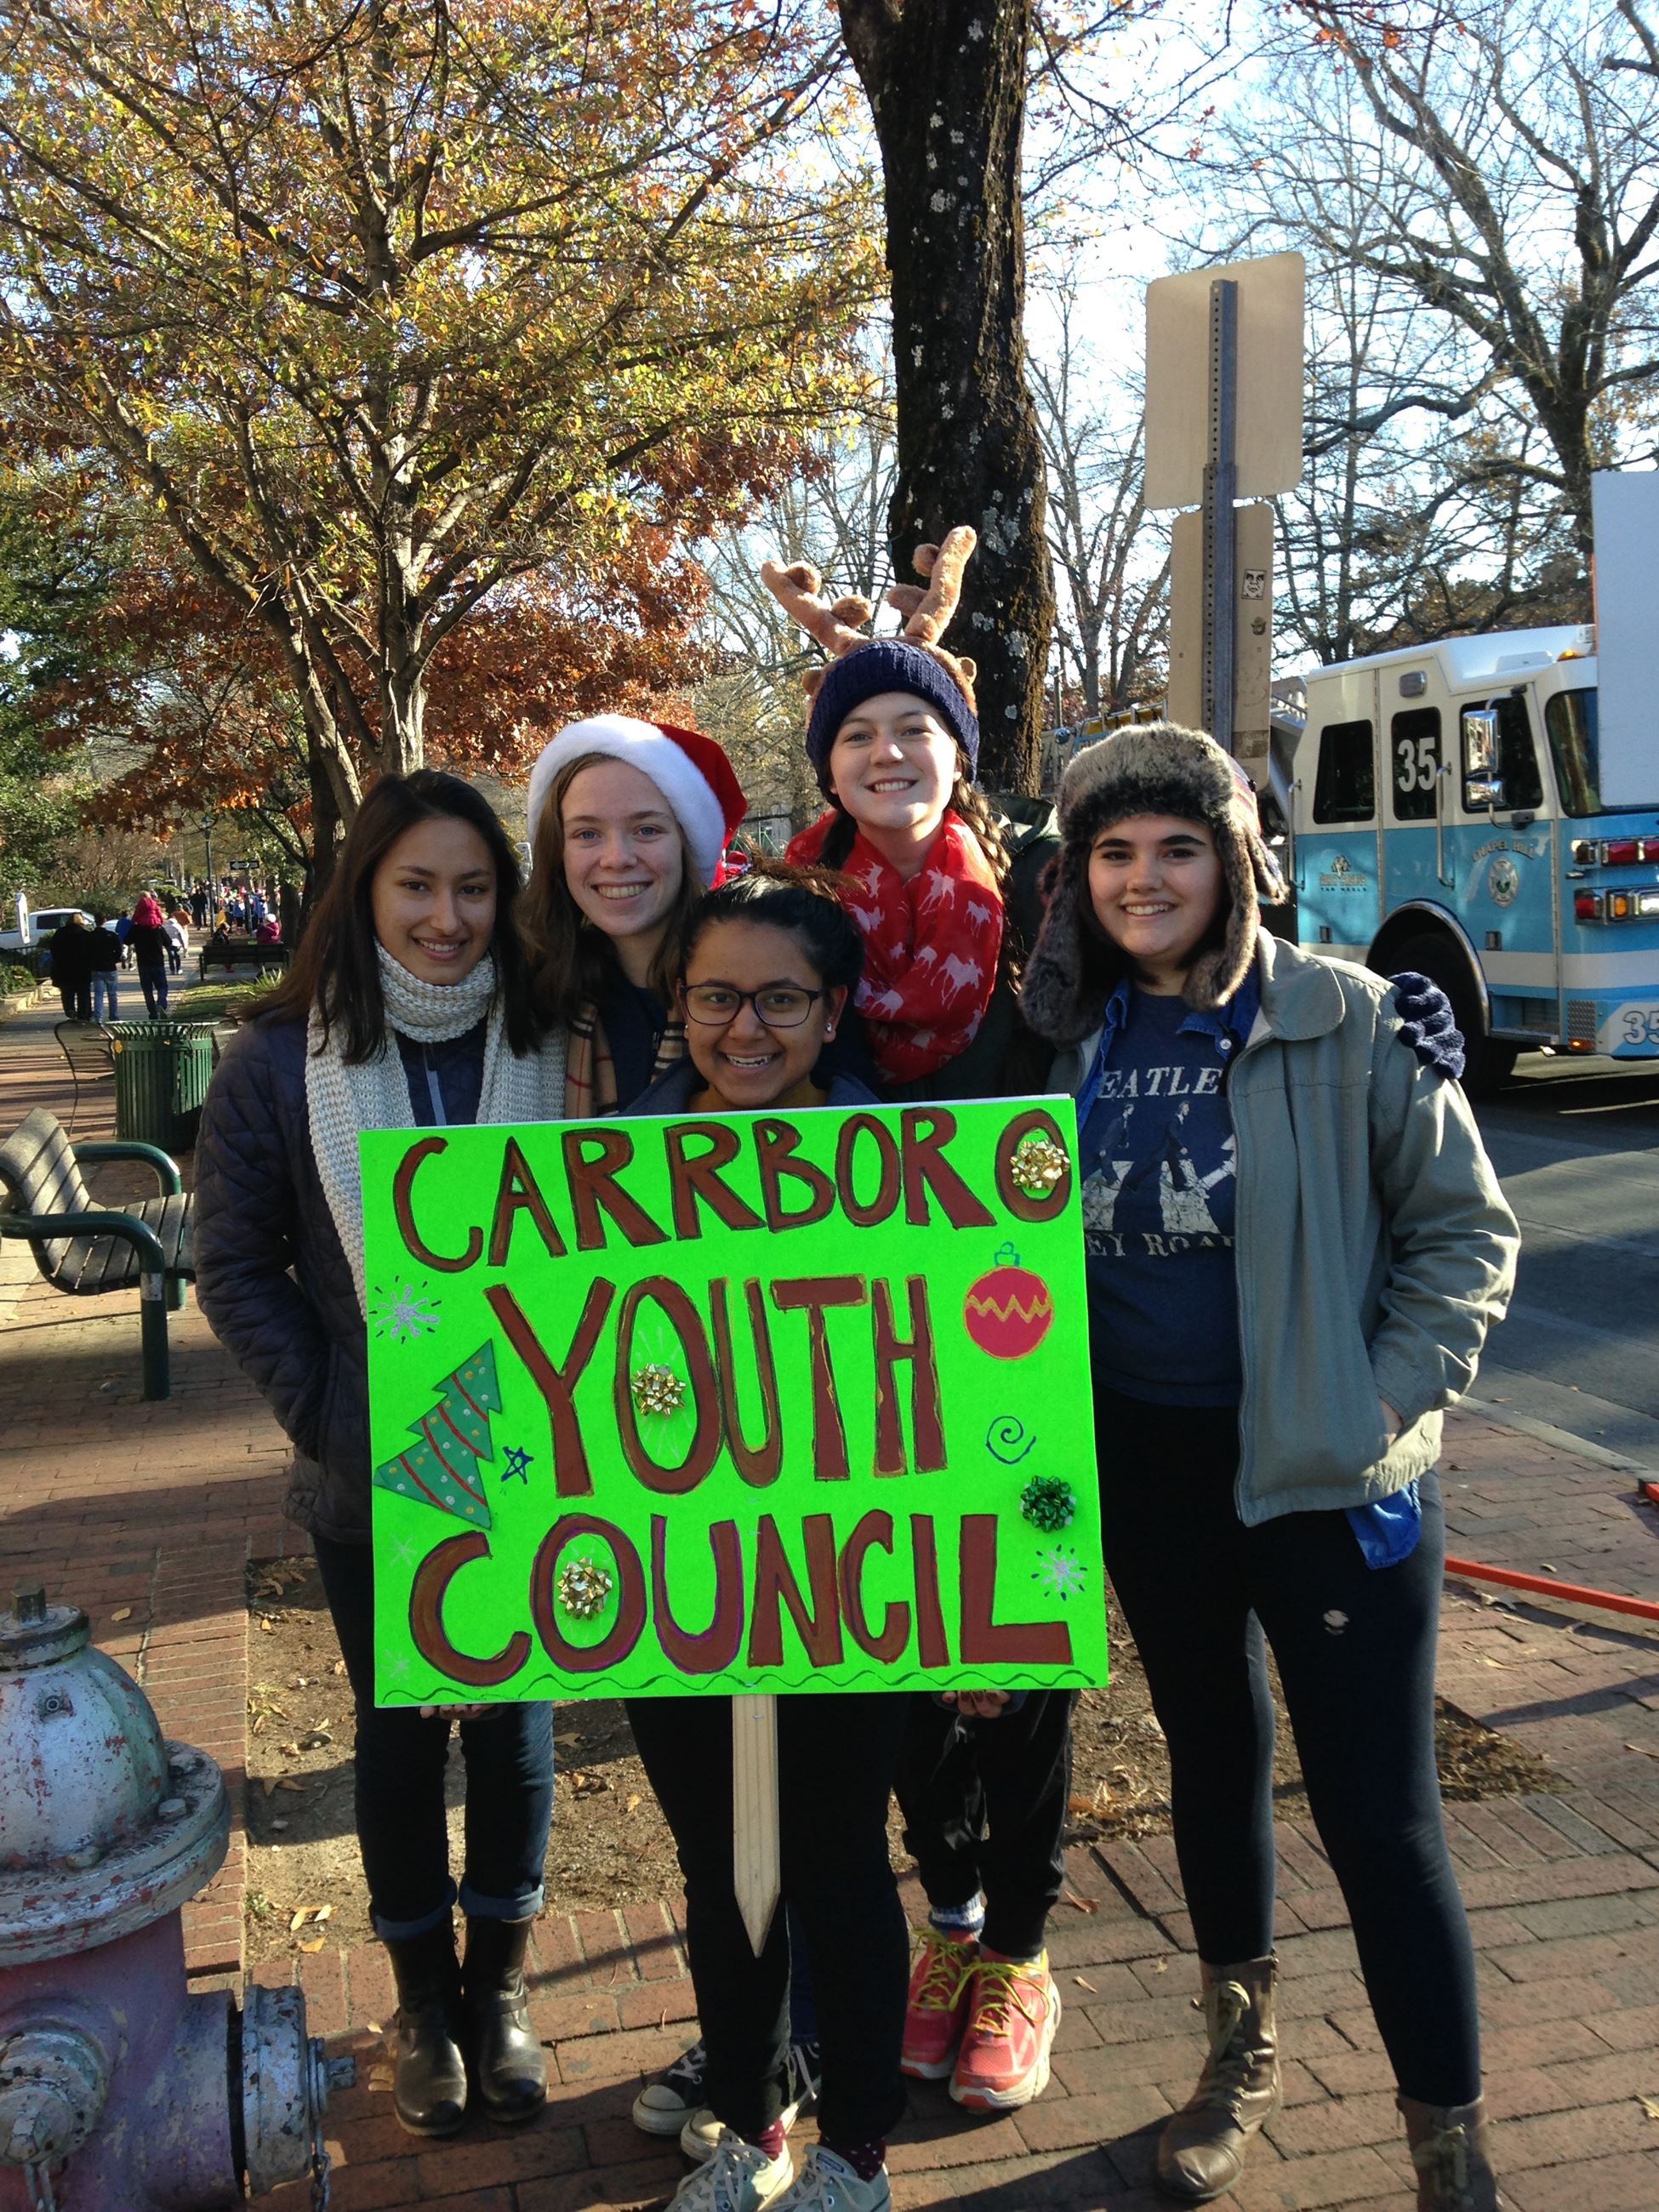 Carrboro Youth Council